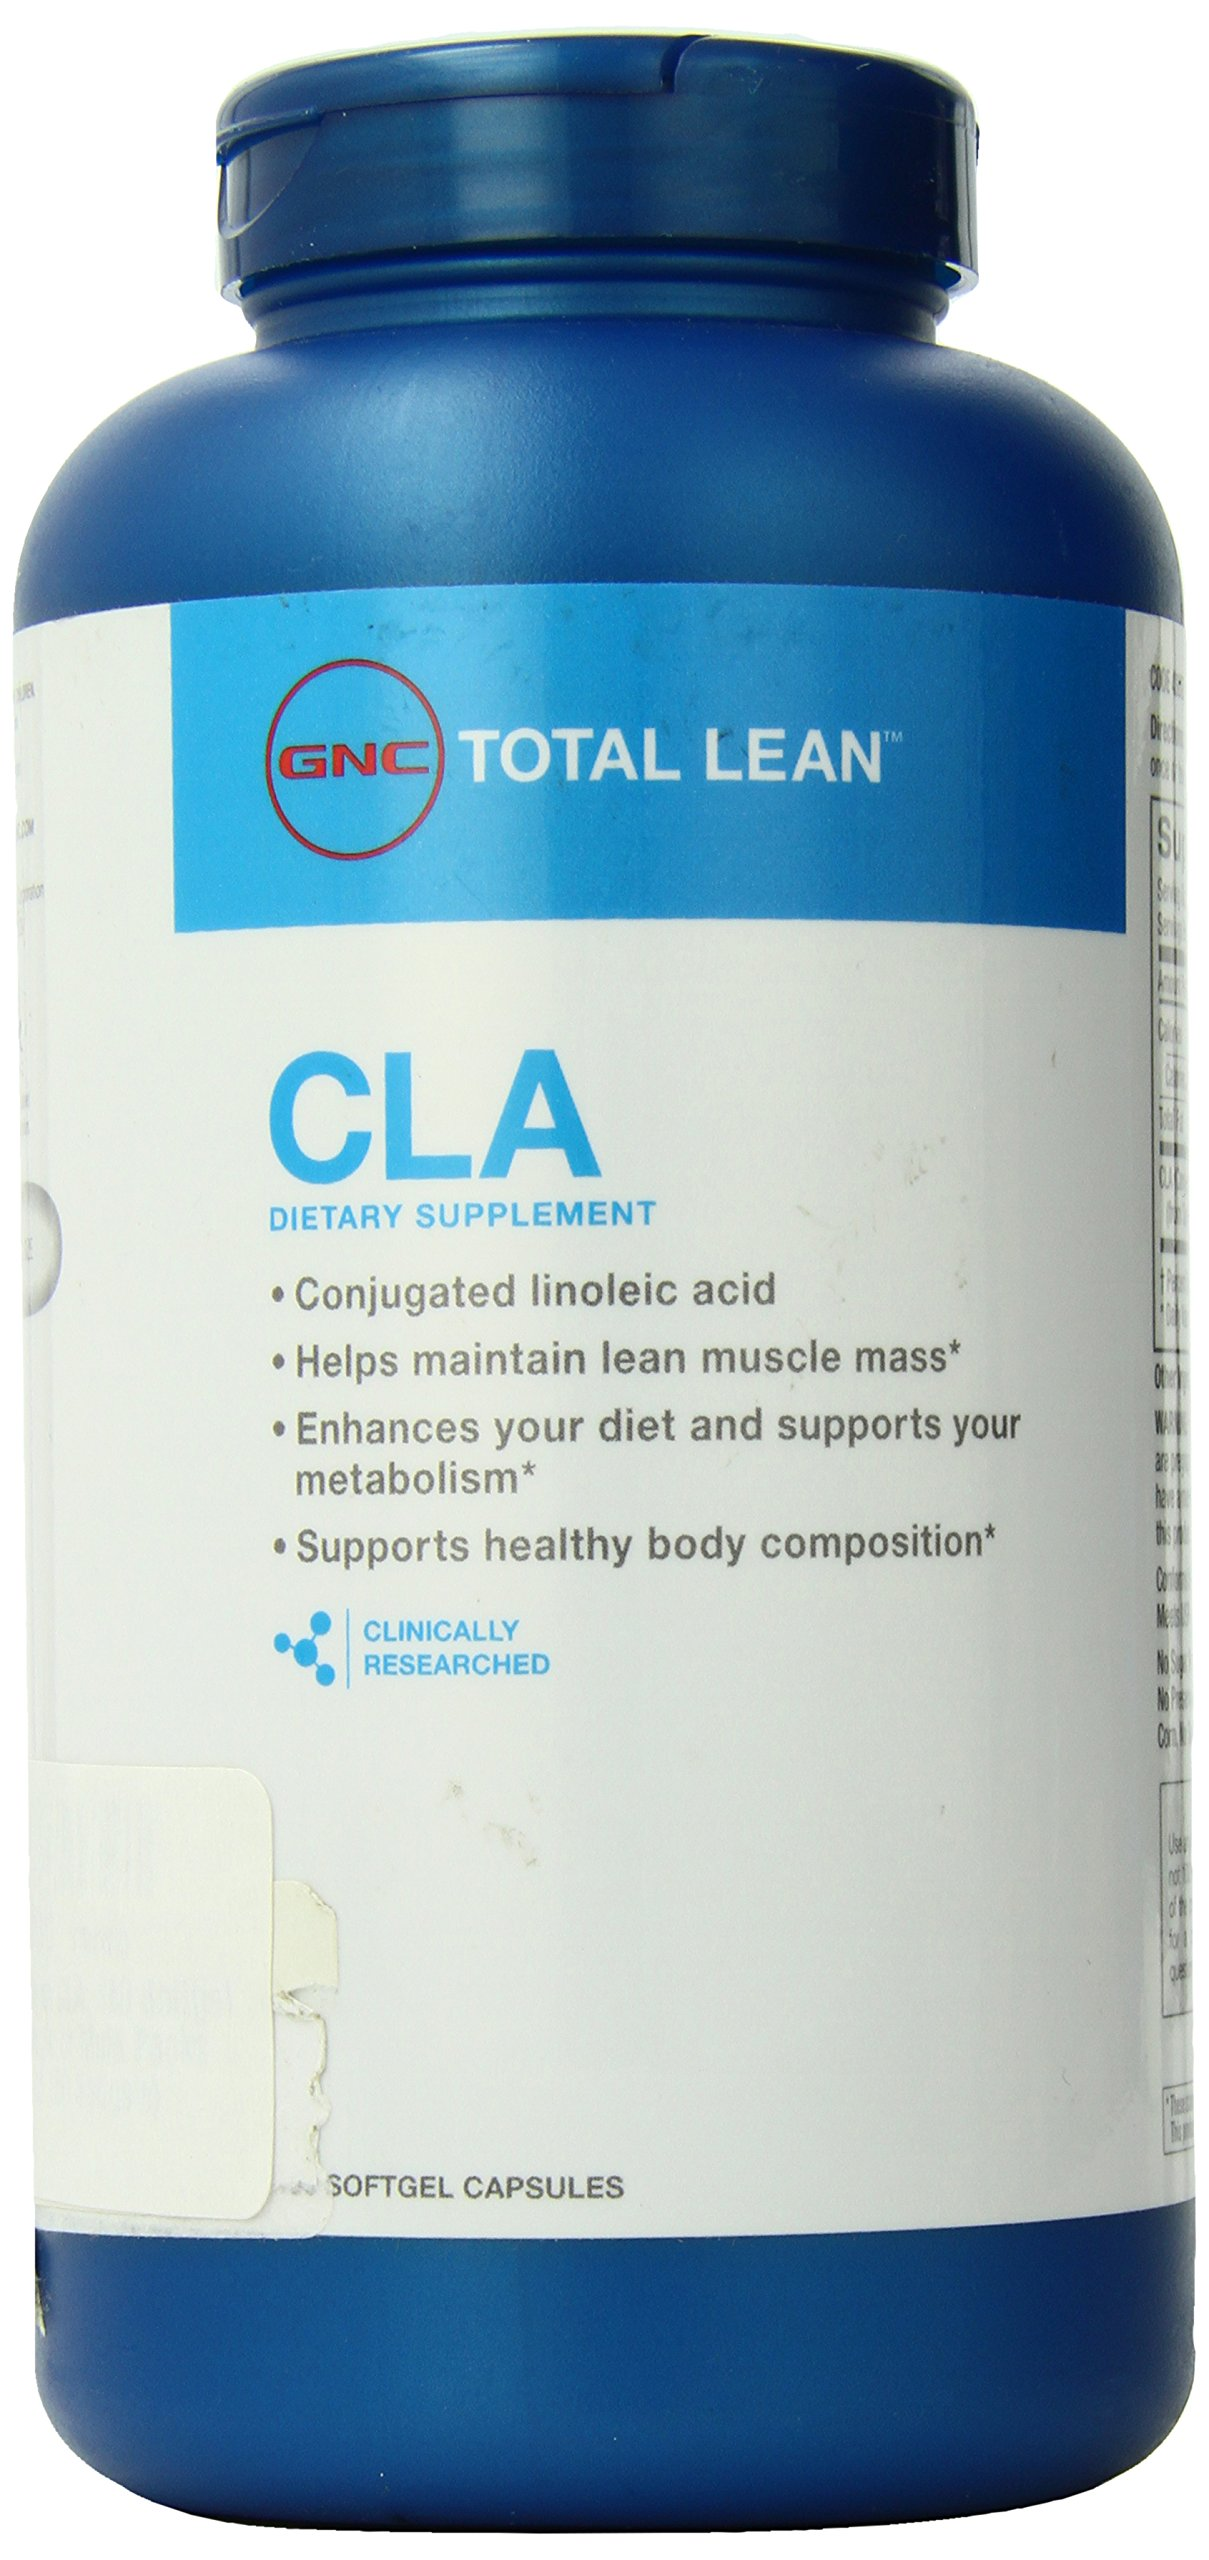 GNC Total Lean CLA 180 Softgel Capsules